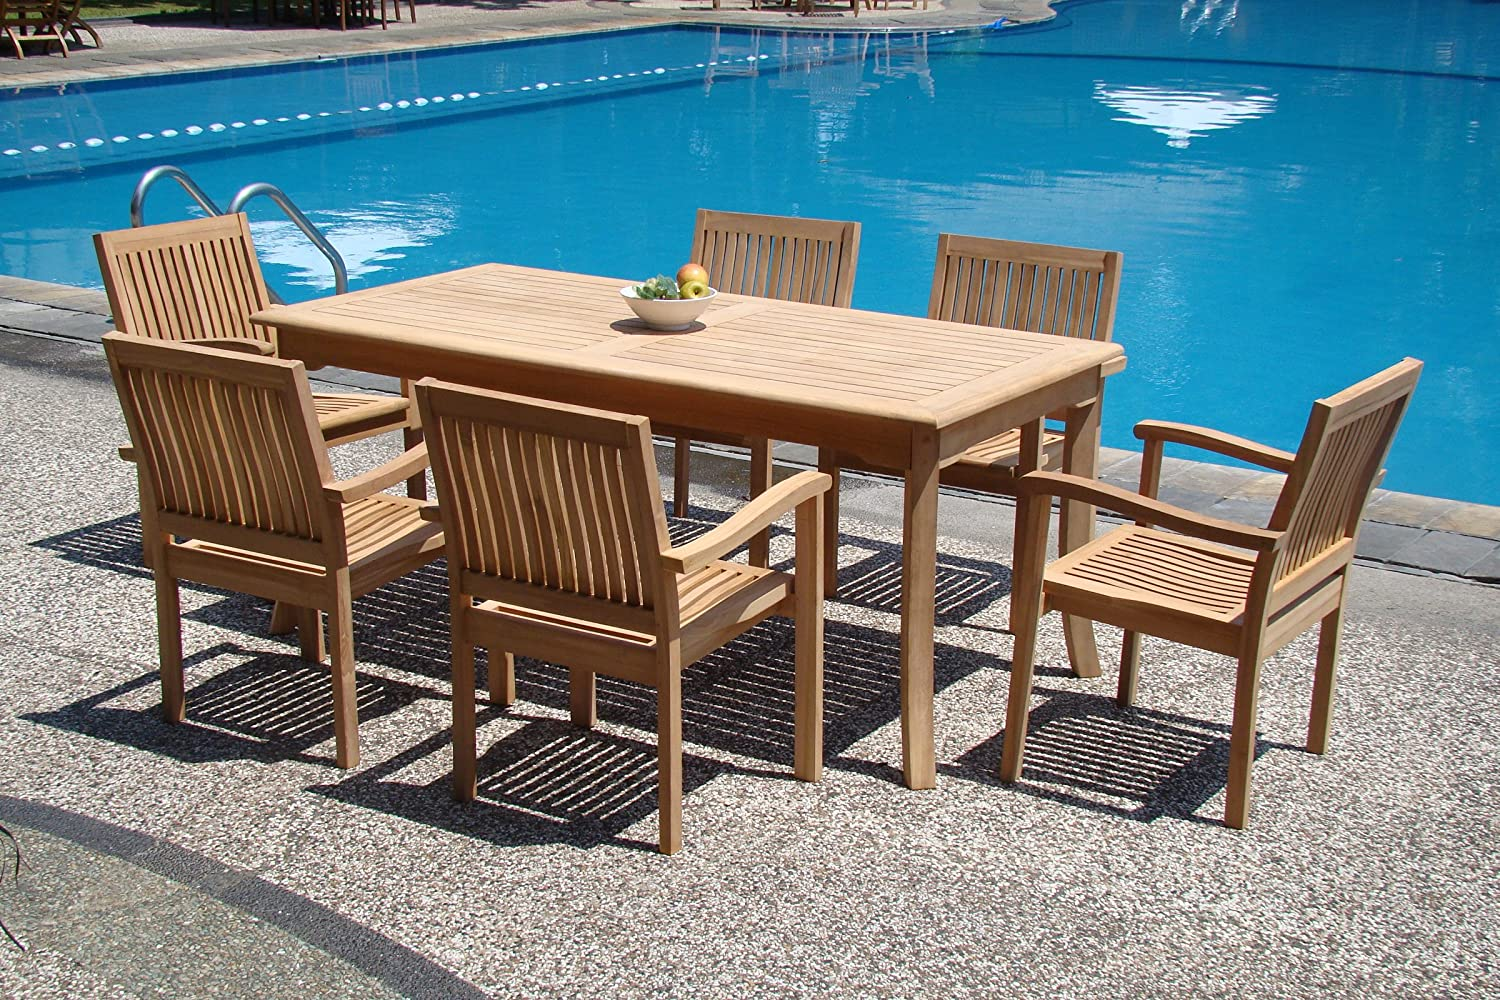 Grade-A Teak Wood Luxurious Dining Set Collections: 7 pc - 71 Rectangle Table And 6 Leveb Stacking Arm Chairs ролл унаги маки xl